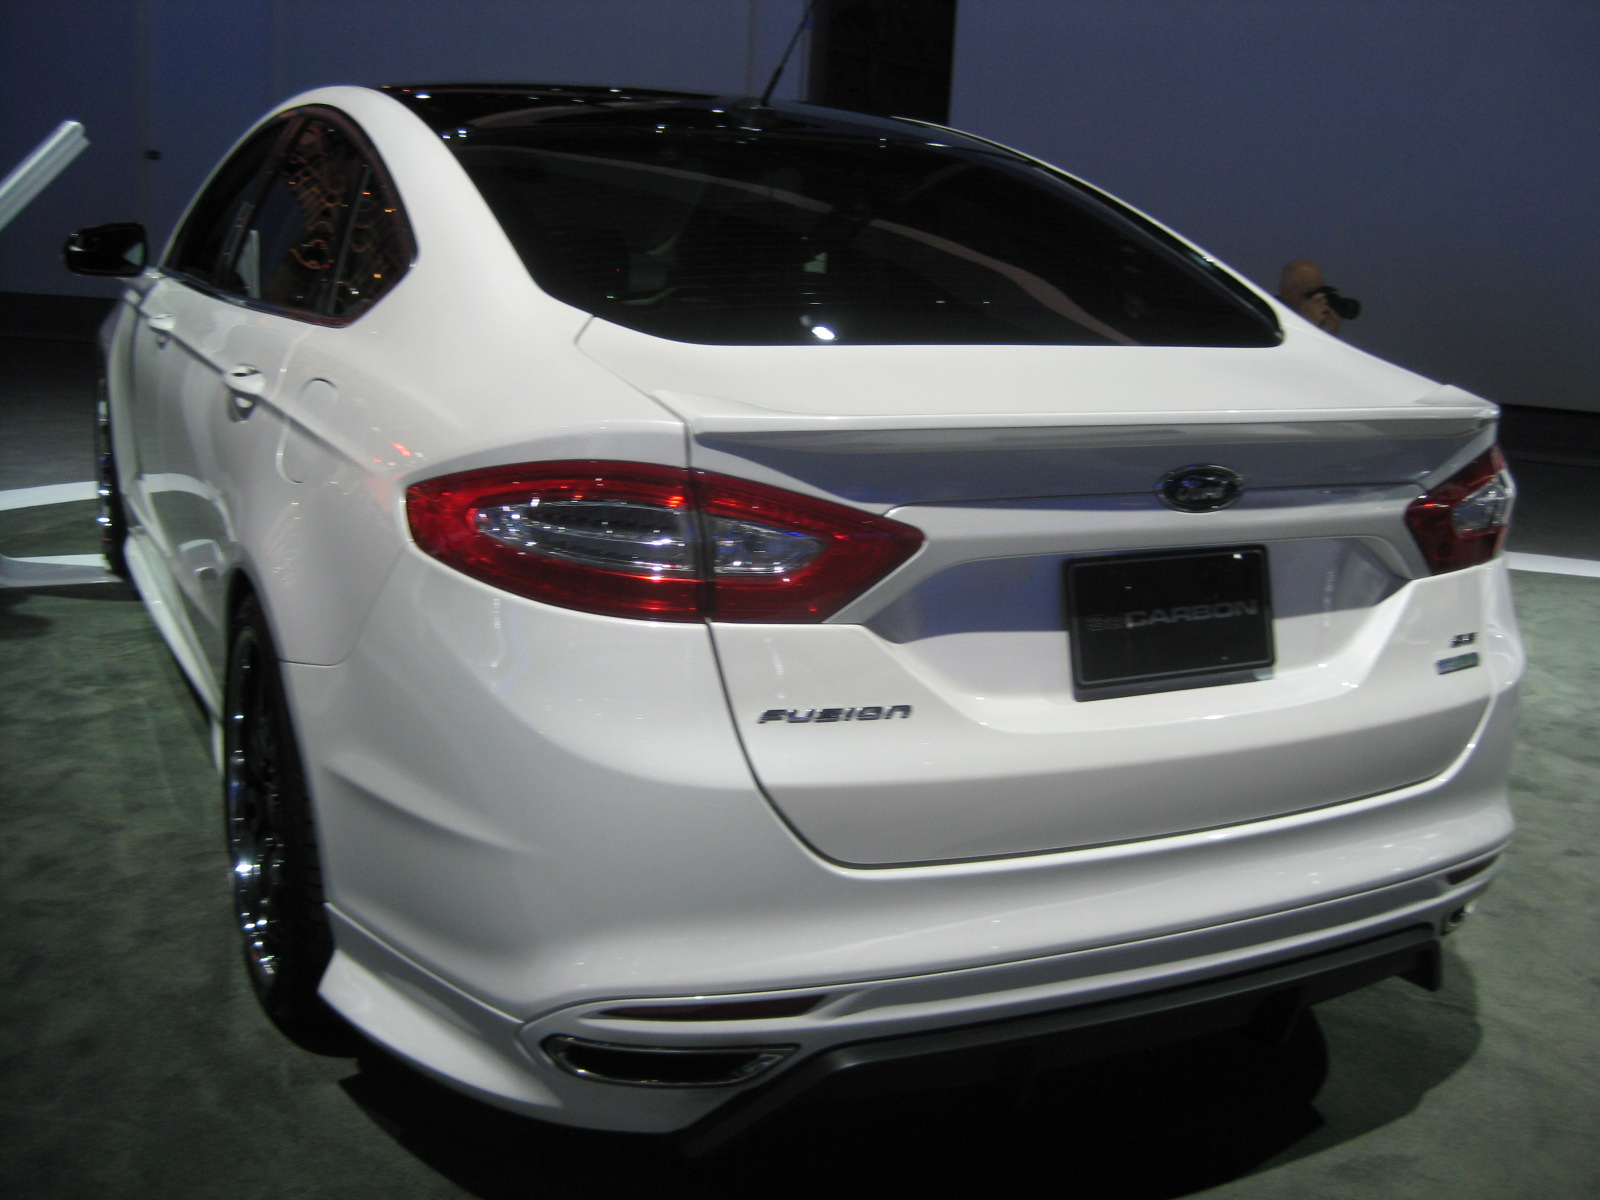 Ford 2013 Fusion Euro Series By 3d Carbon Air Design